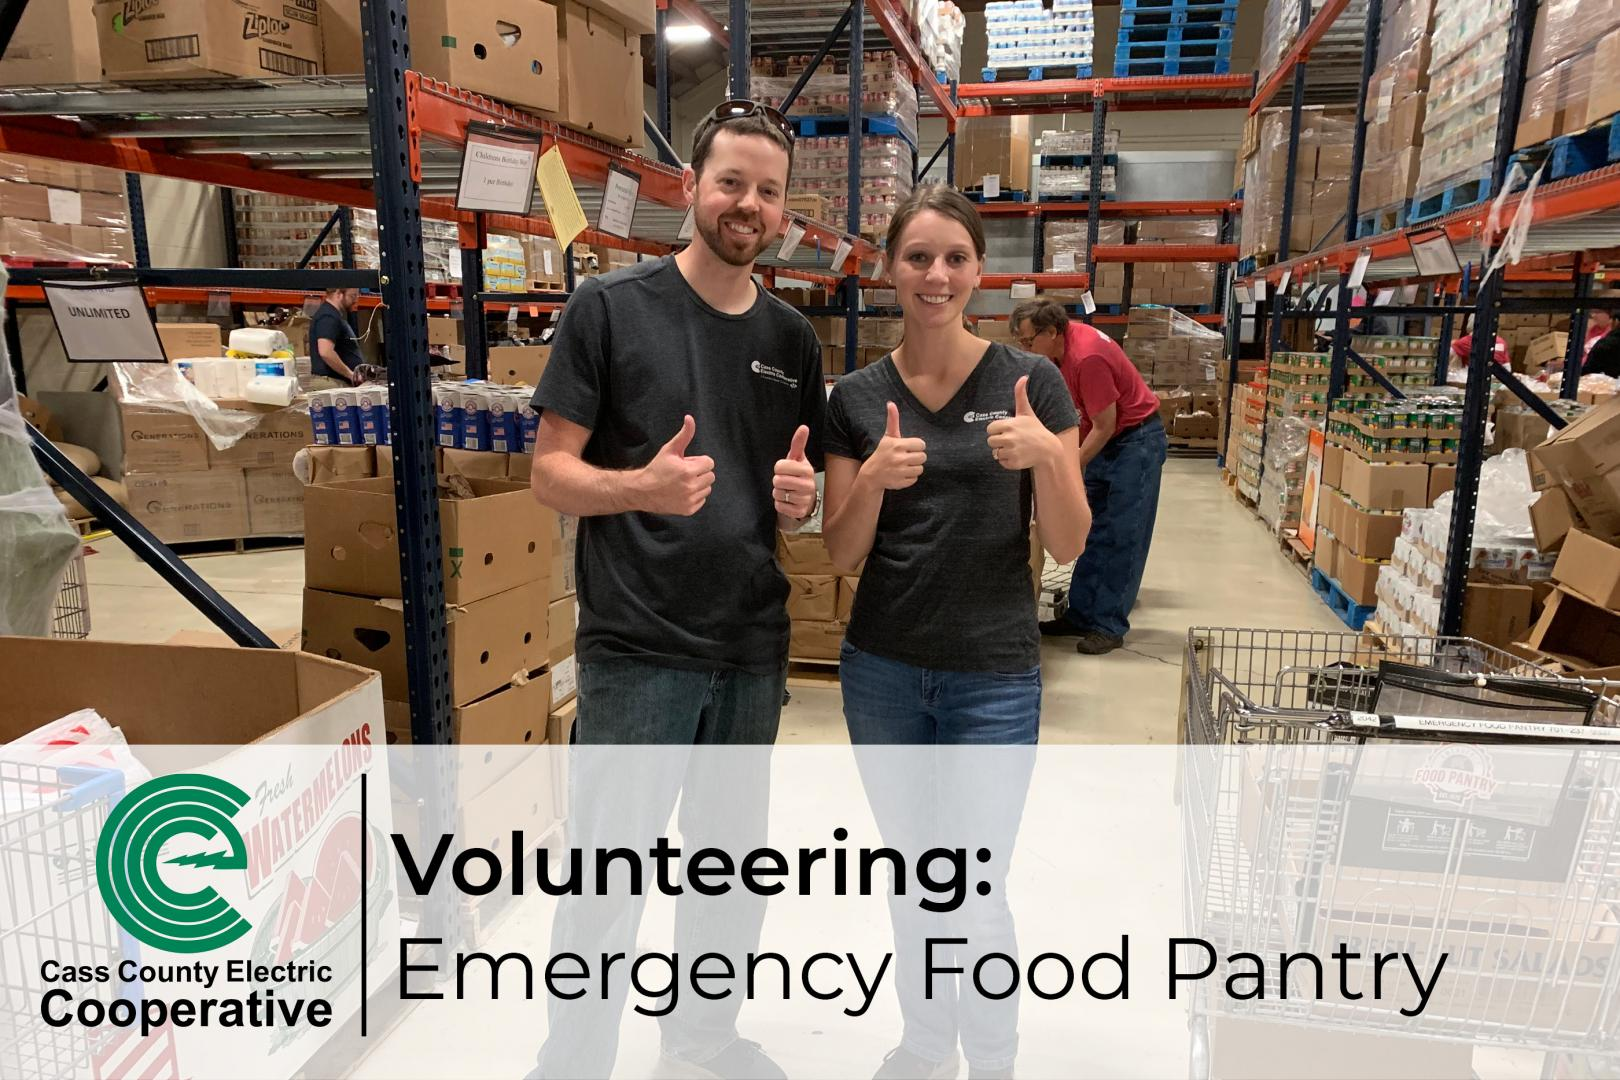 Volunteering at Emergency Food Pantry